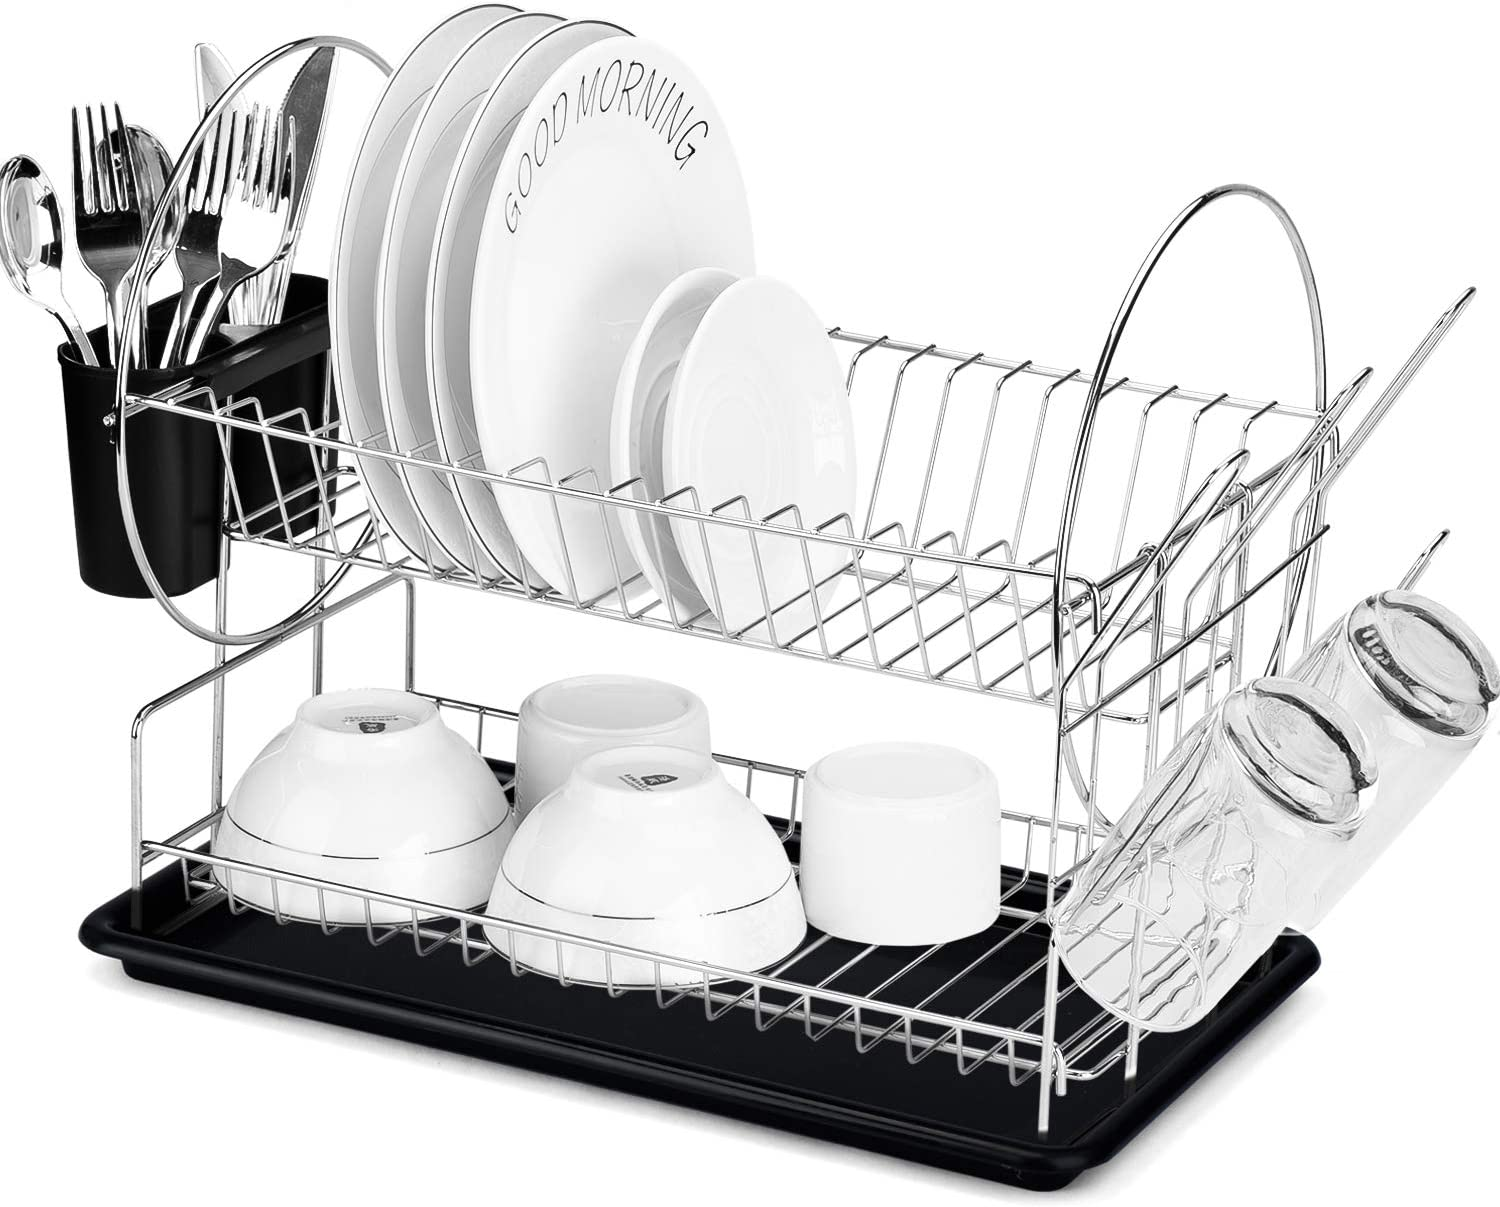 Syntrific Dish Drying Rack, 2 Tier Dish Rack with Utensil Holder, Cup Holder and Dish Drainer for Kitchen Counter Top, Plated Chrome Dish Dryer Silver 15 x 13 x 8 inch Black